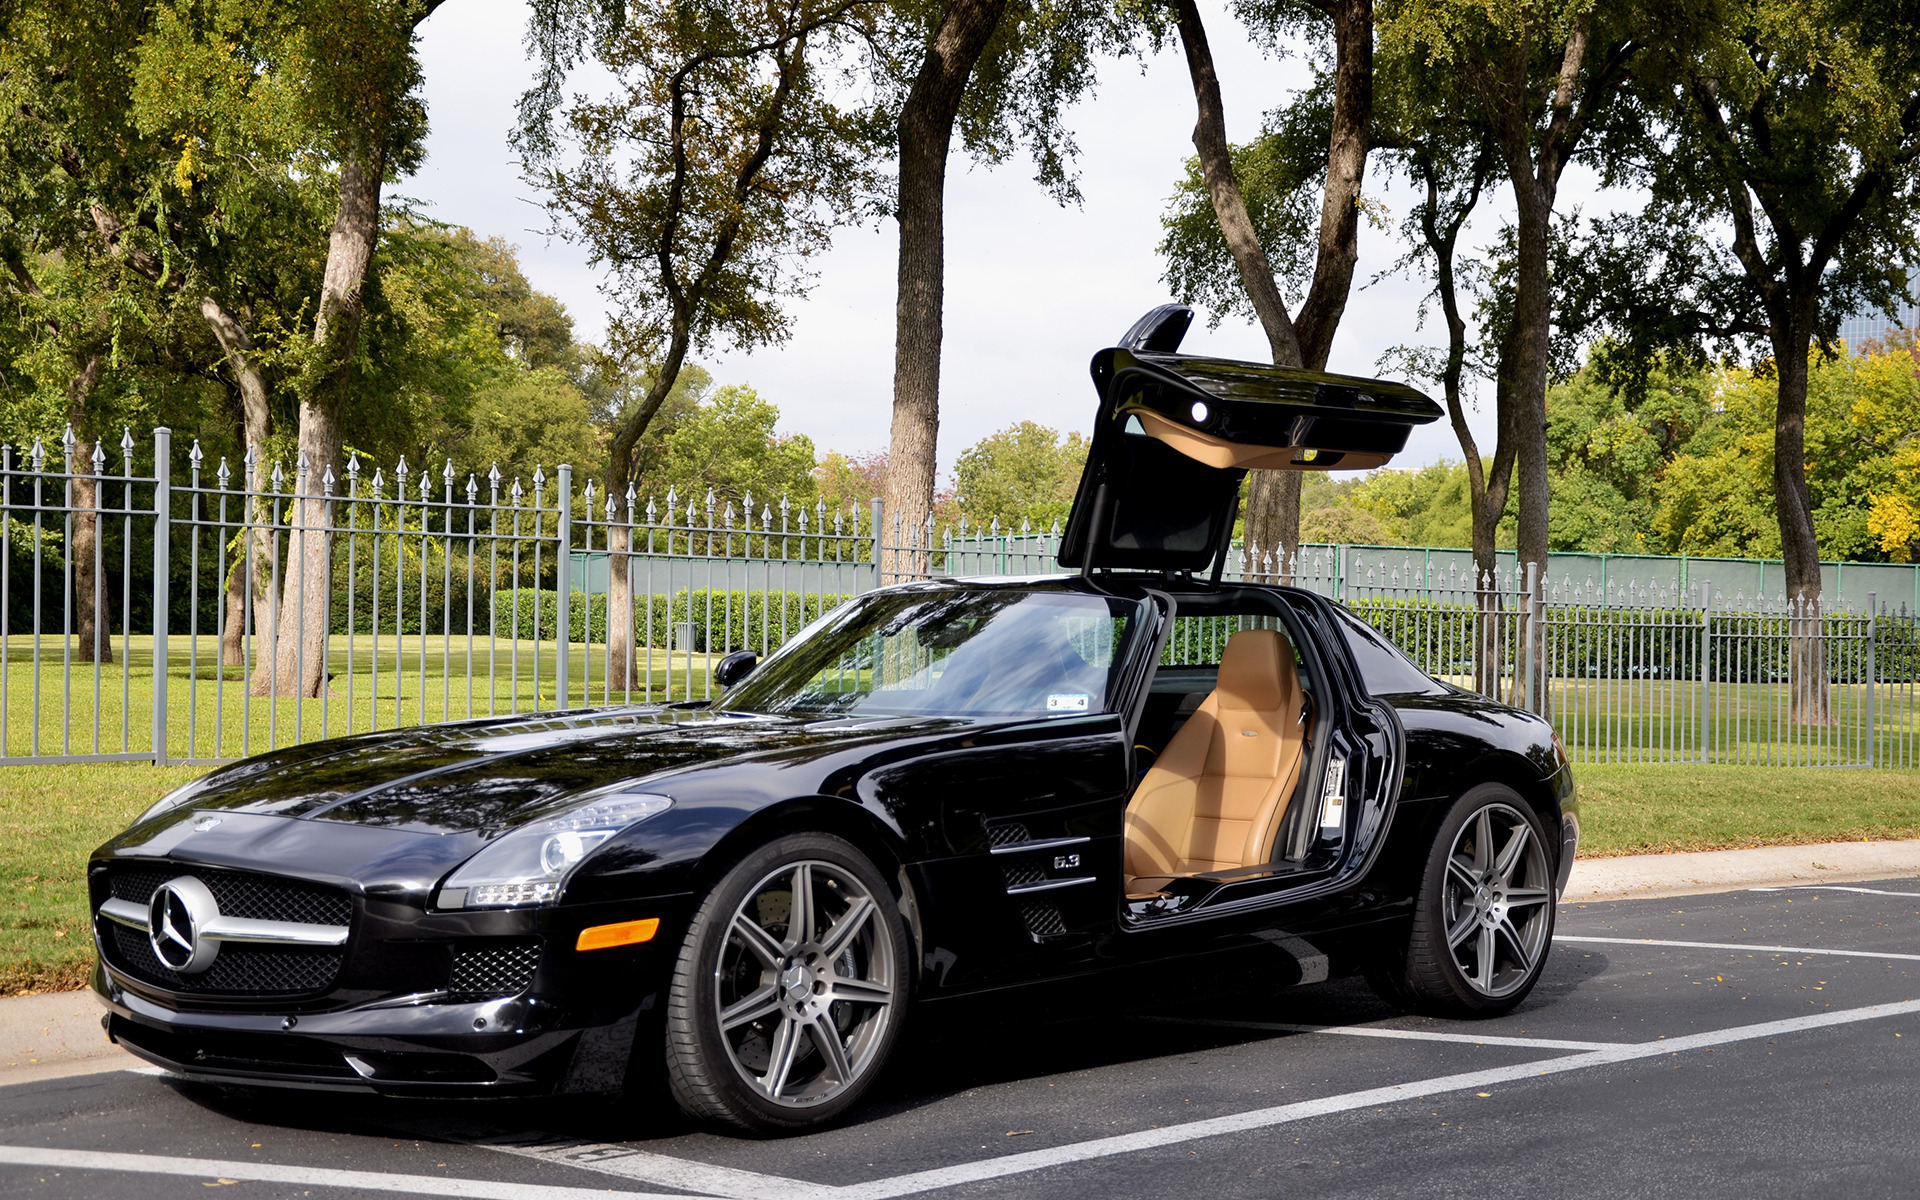 2011 Mercedes-Benz SLS AMG for sale Sold Platinum Motorcars in Dallas TX 1